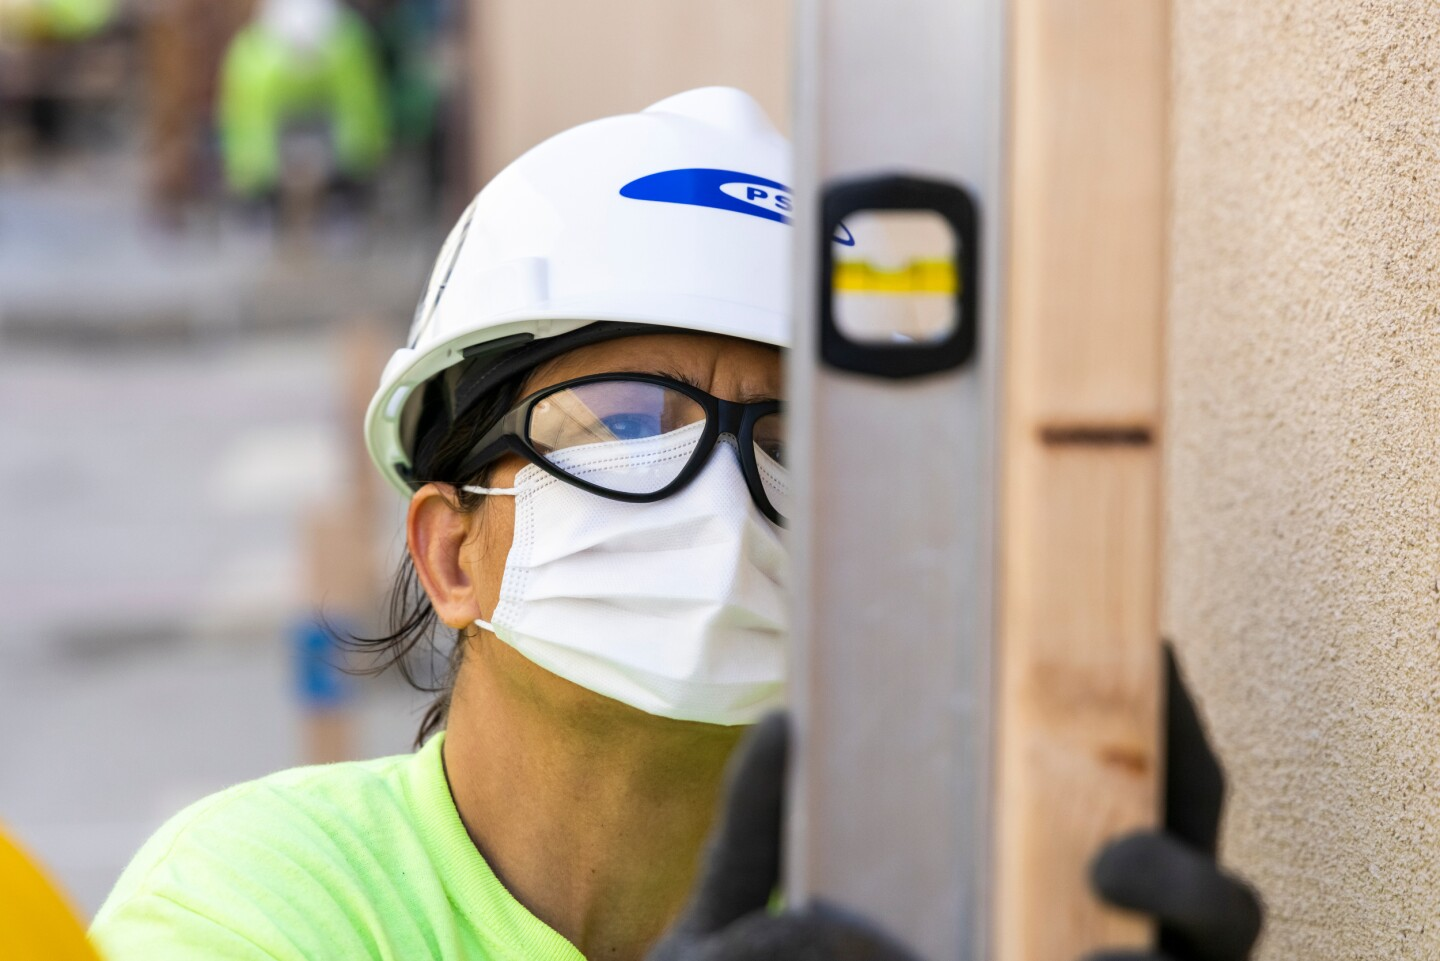 A woman wearing a hard hat, safety glasses and a mask looks at a leveling tool